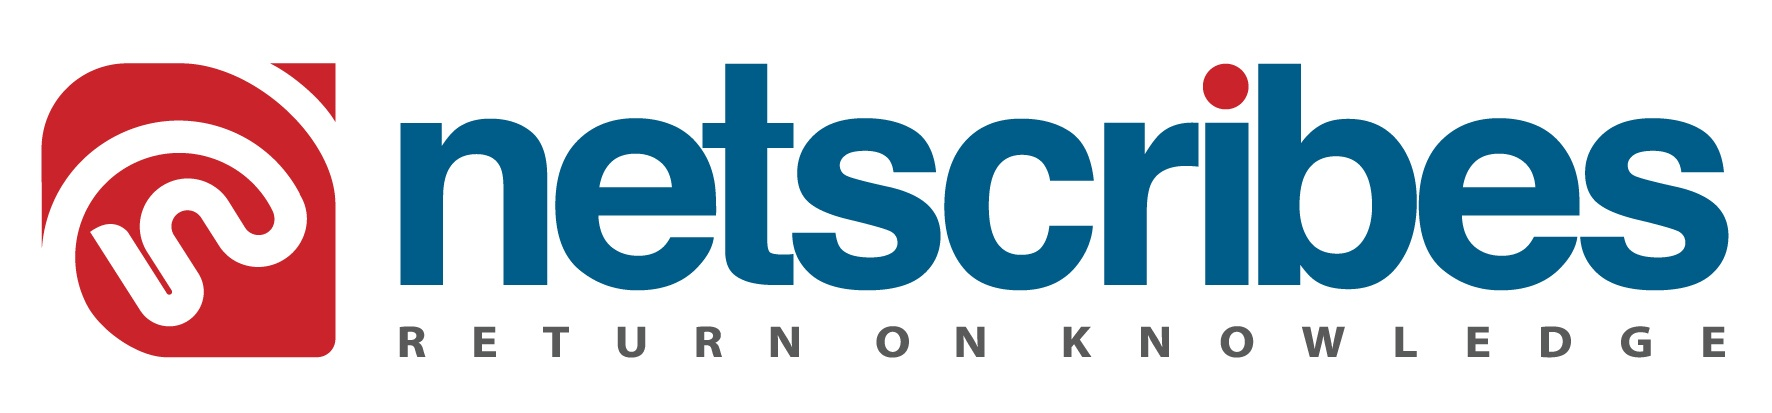 Q&A with Market Research Firm Netscribes, Inc.